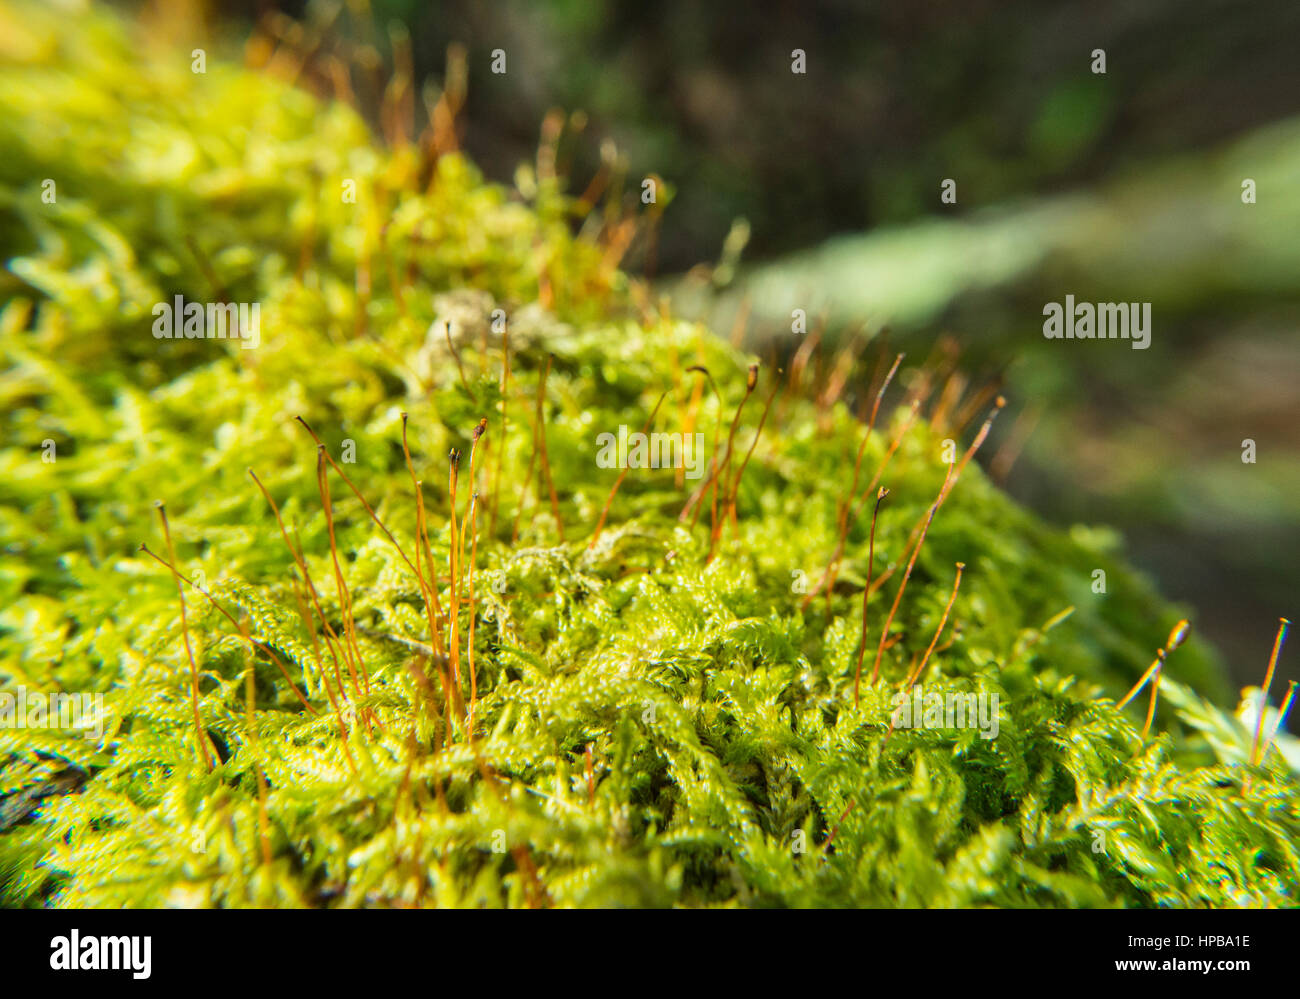 Focus on Moss - Stock Image